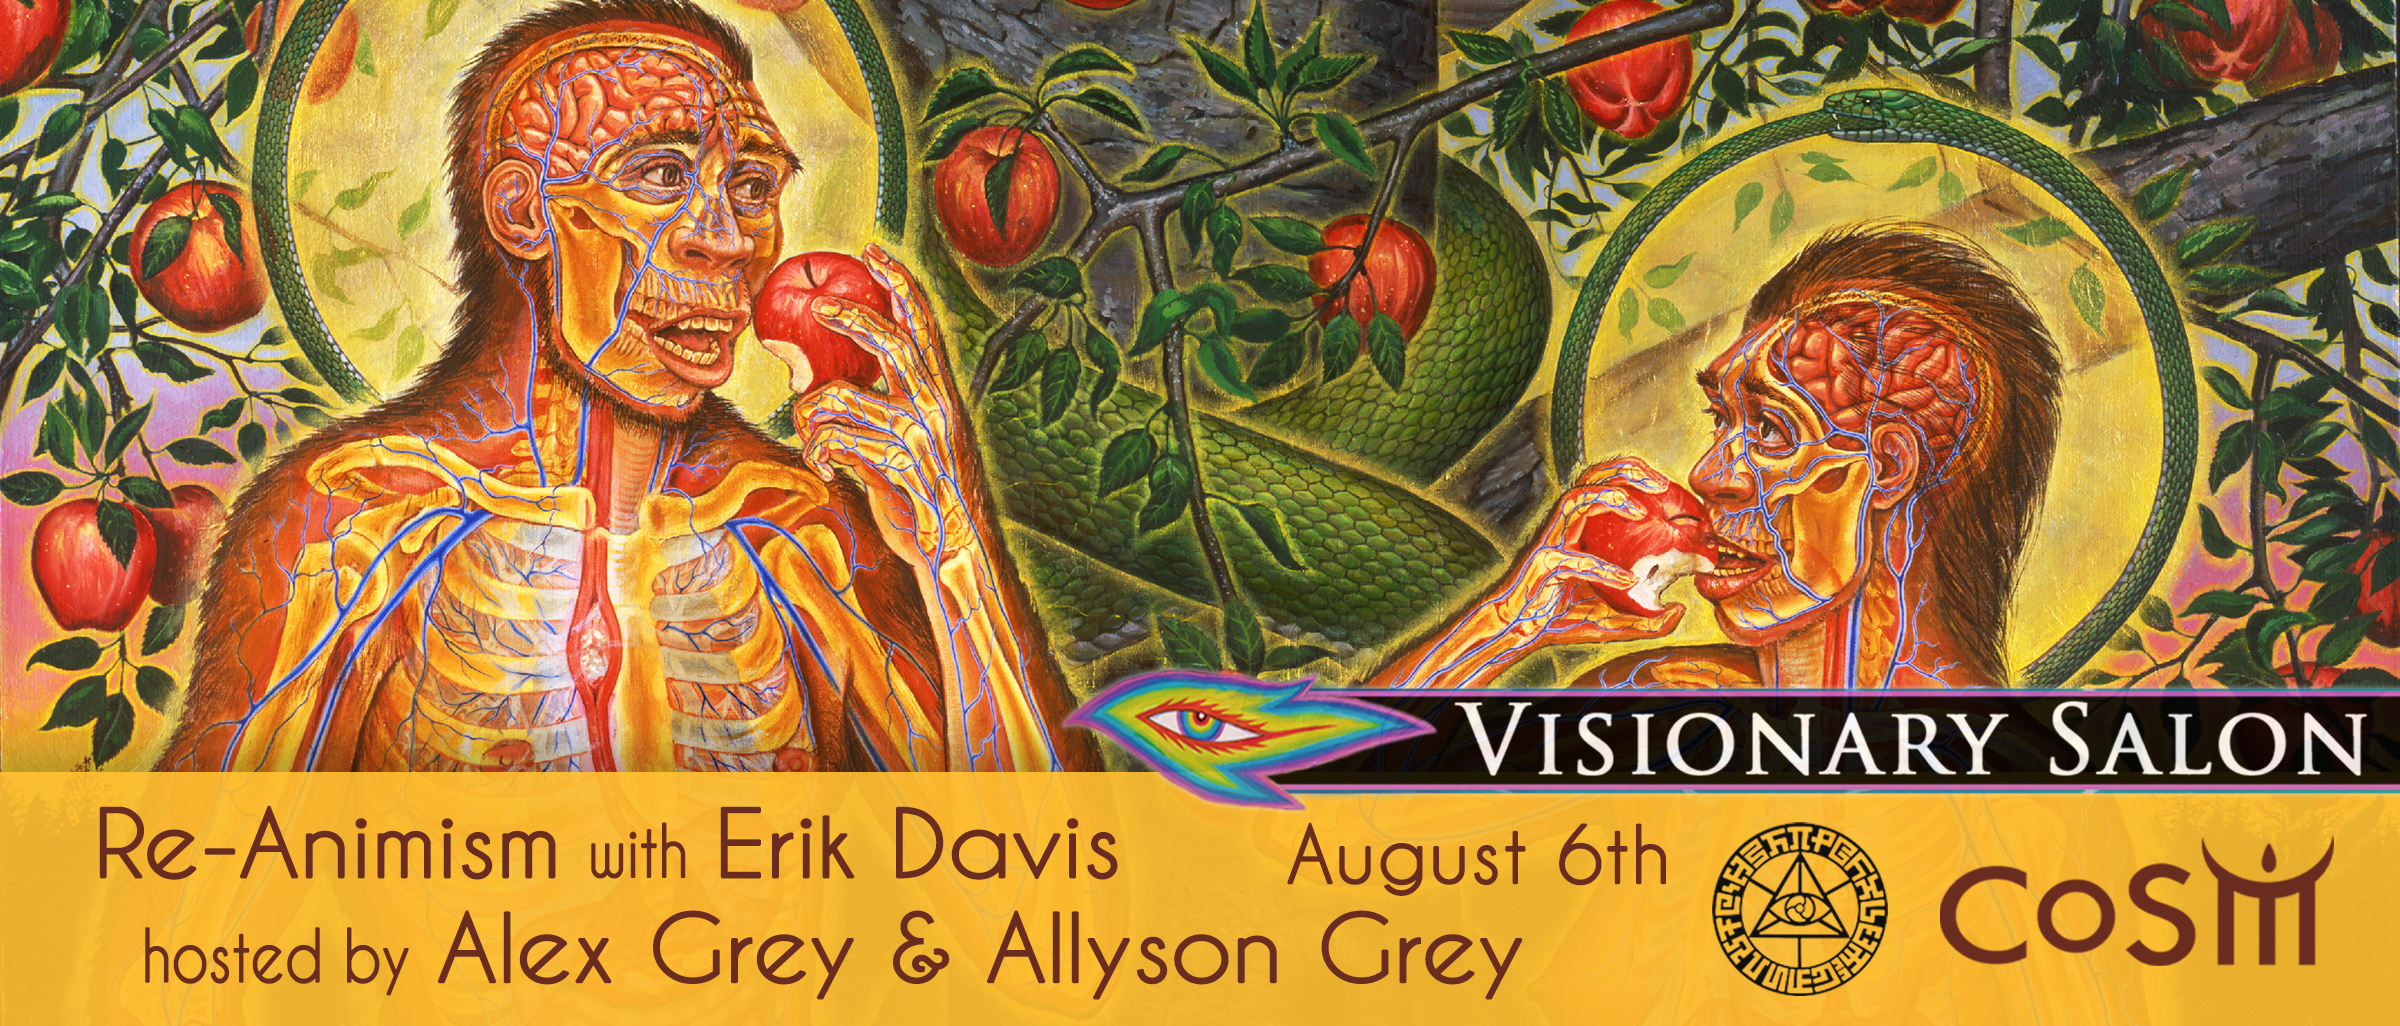 Visionary salon re animism with erik davis chapel of for A visionary salon